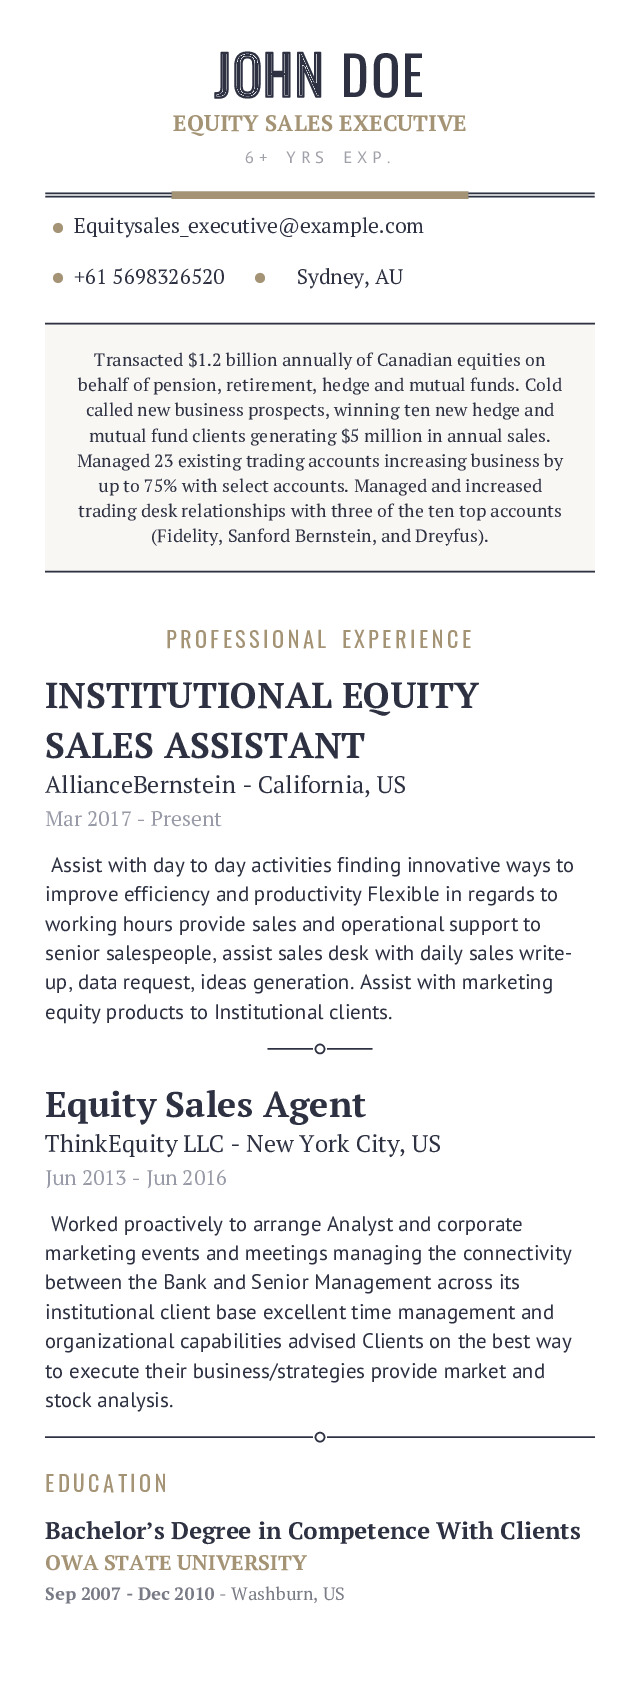 Equity Sales Executive Mobile Resume Example